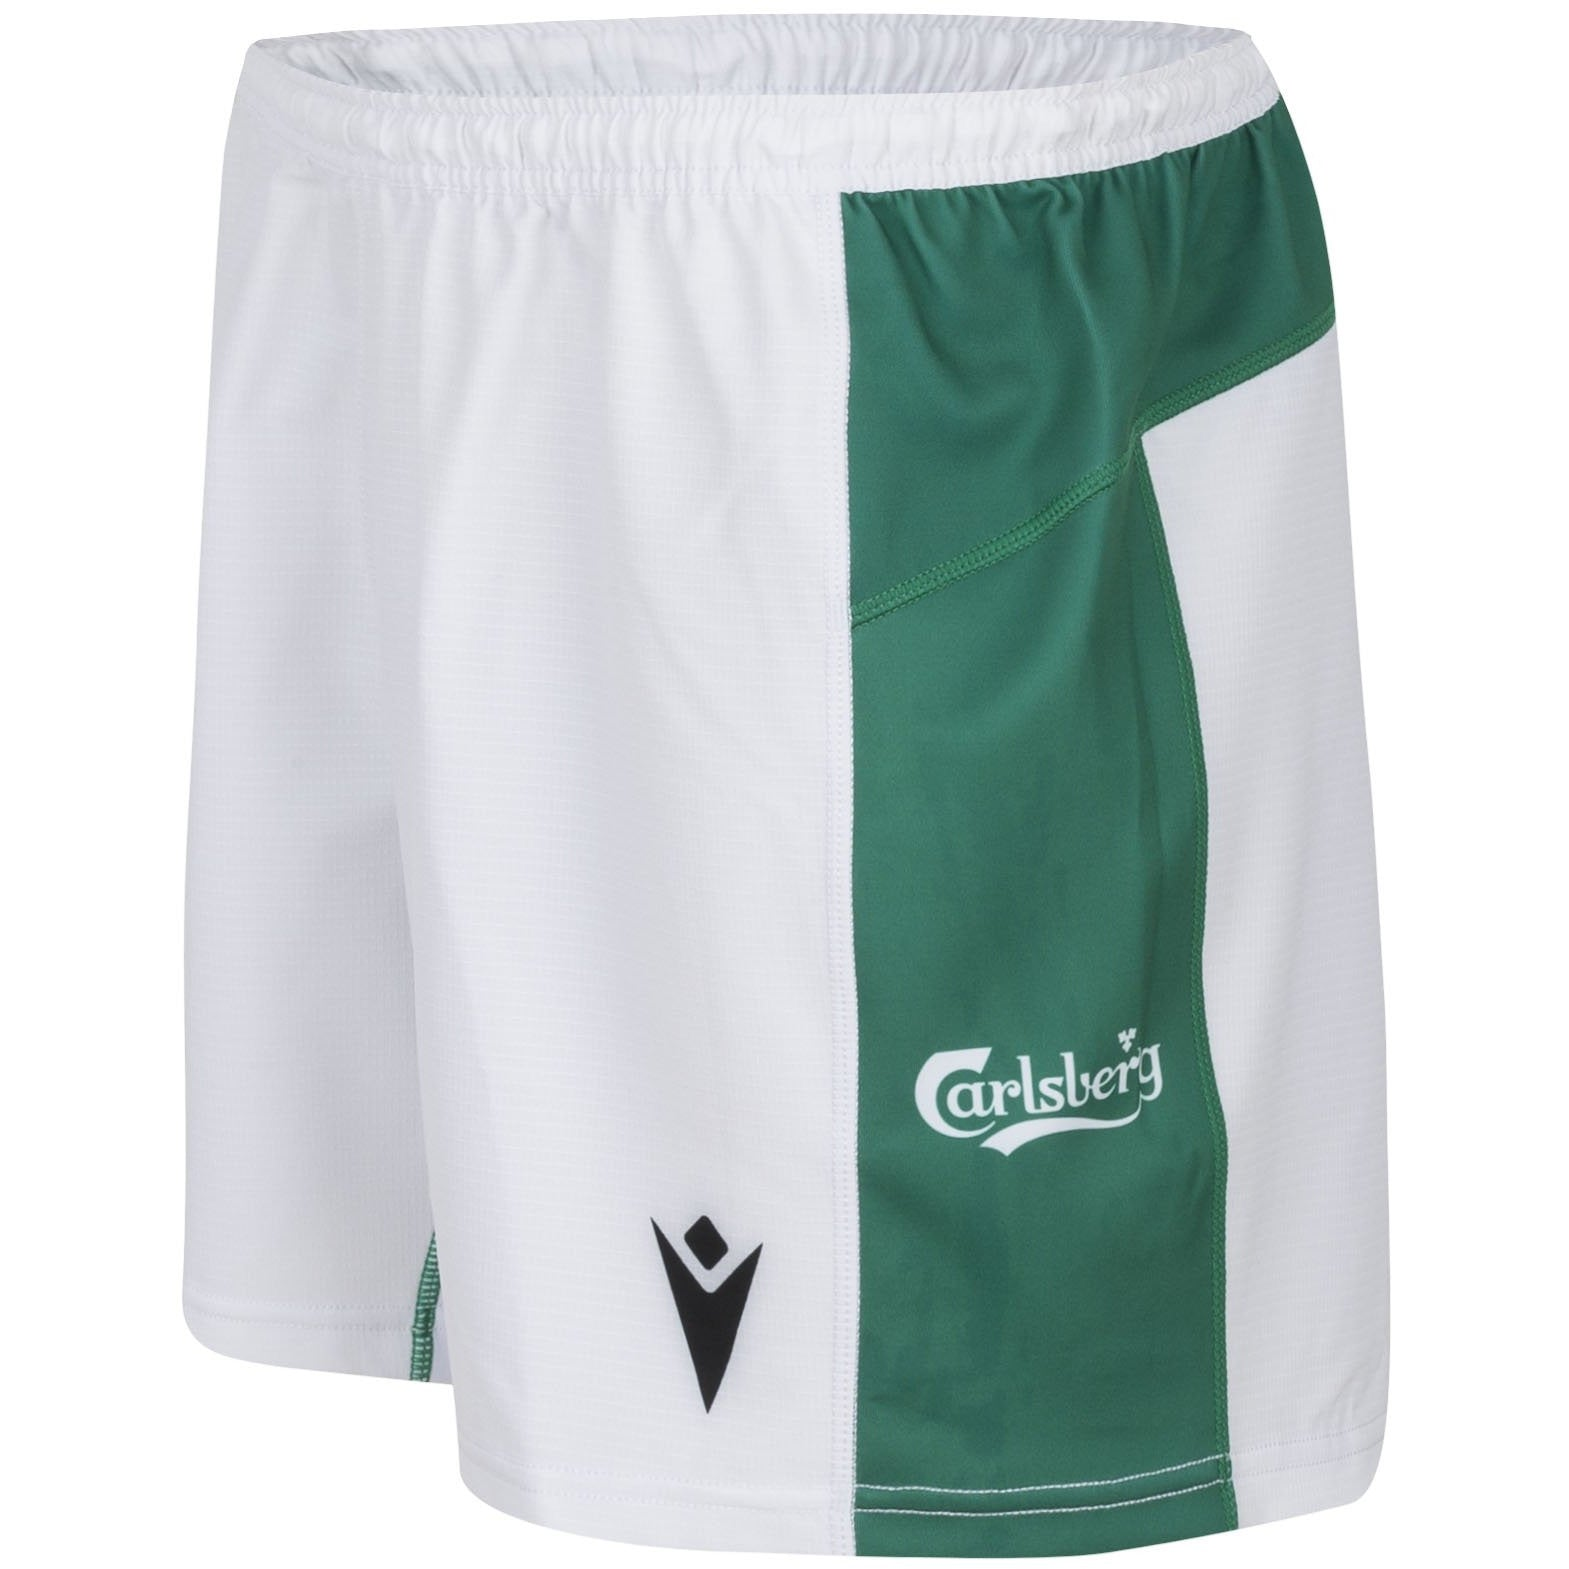 20/21 Replica Away Shorts Adult